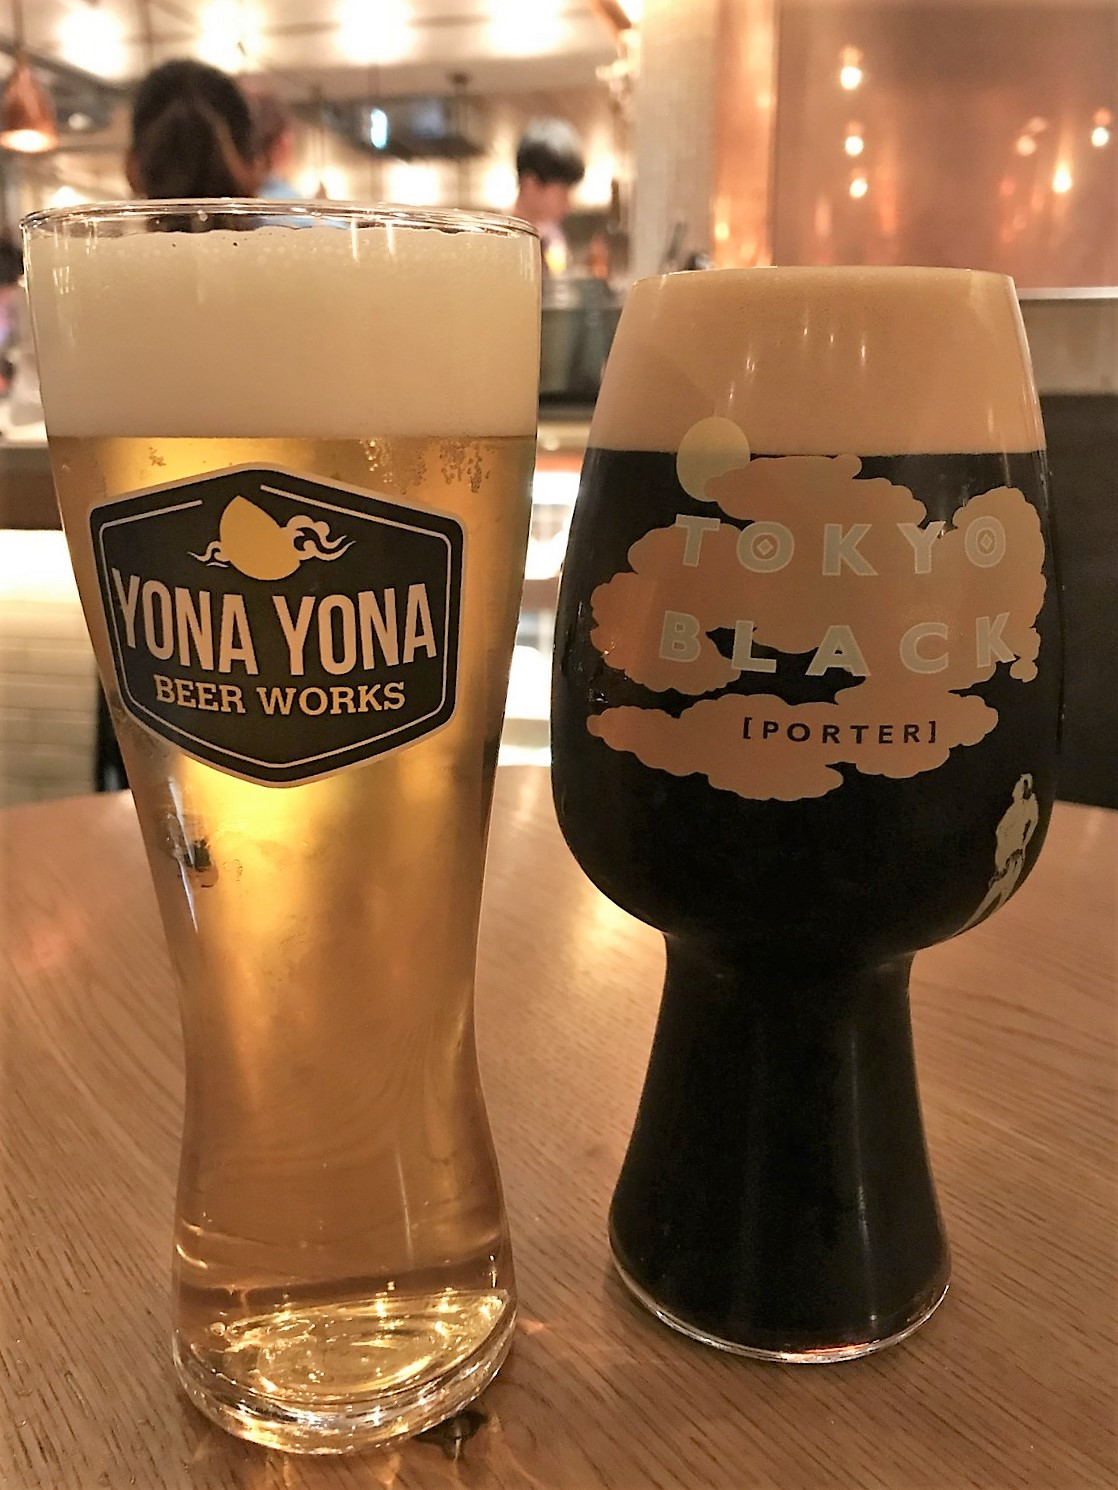 Yona Yona Beer Works in Shinjuku